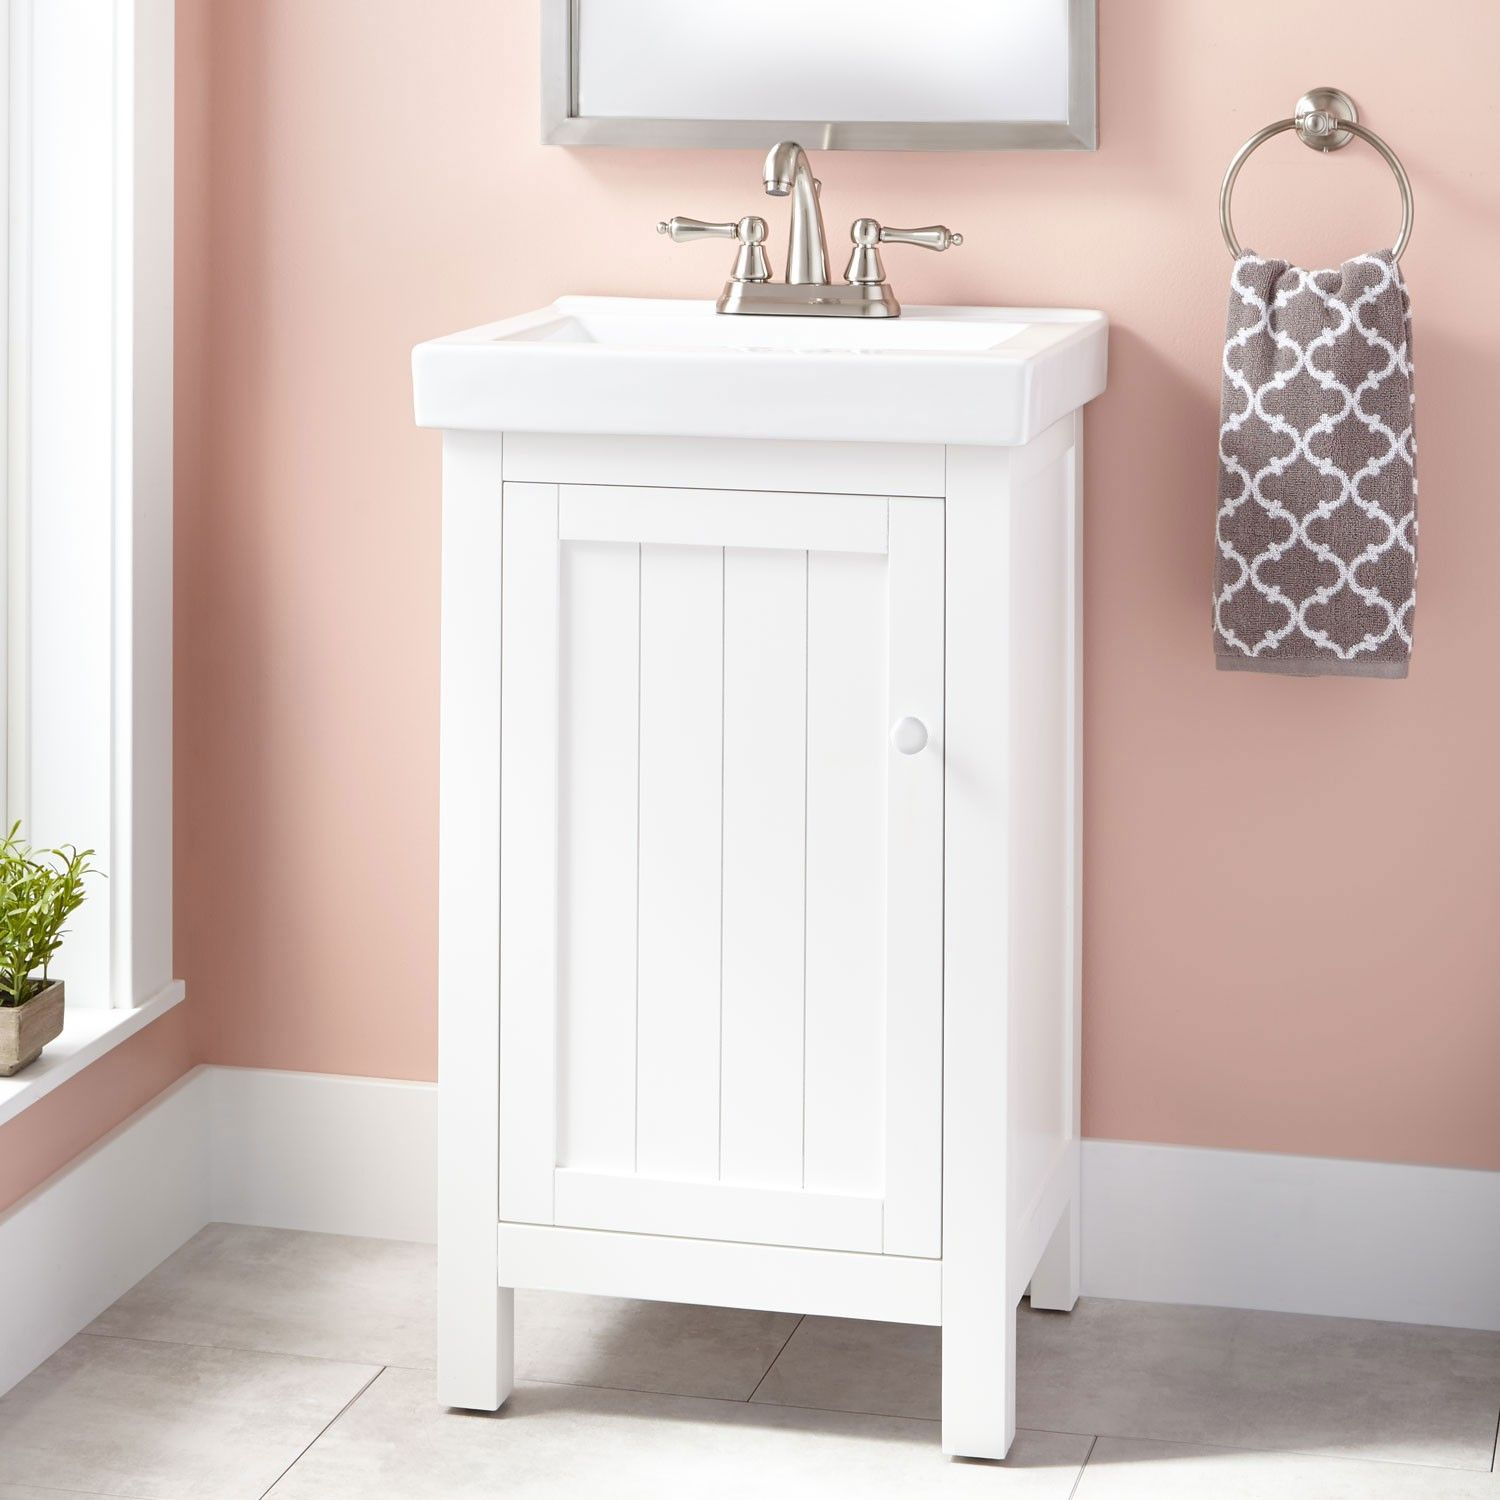 20 Harris Vanity Cabinet White Bathroom Vanities Bathroom 20 Inch Bathroom Vanity Vanity Cabinet Vanity